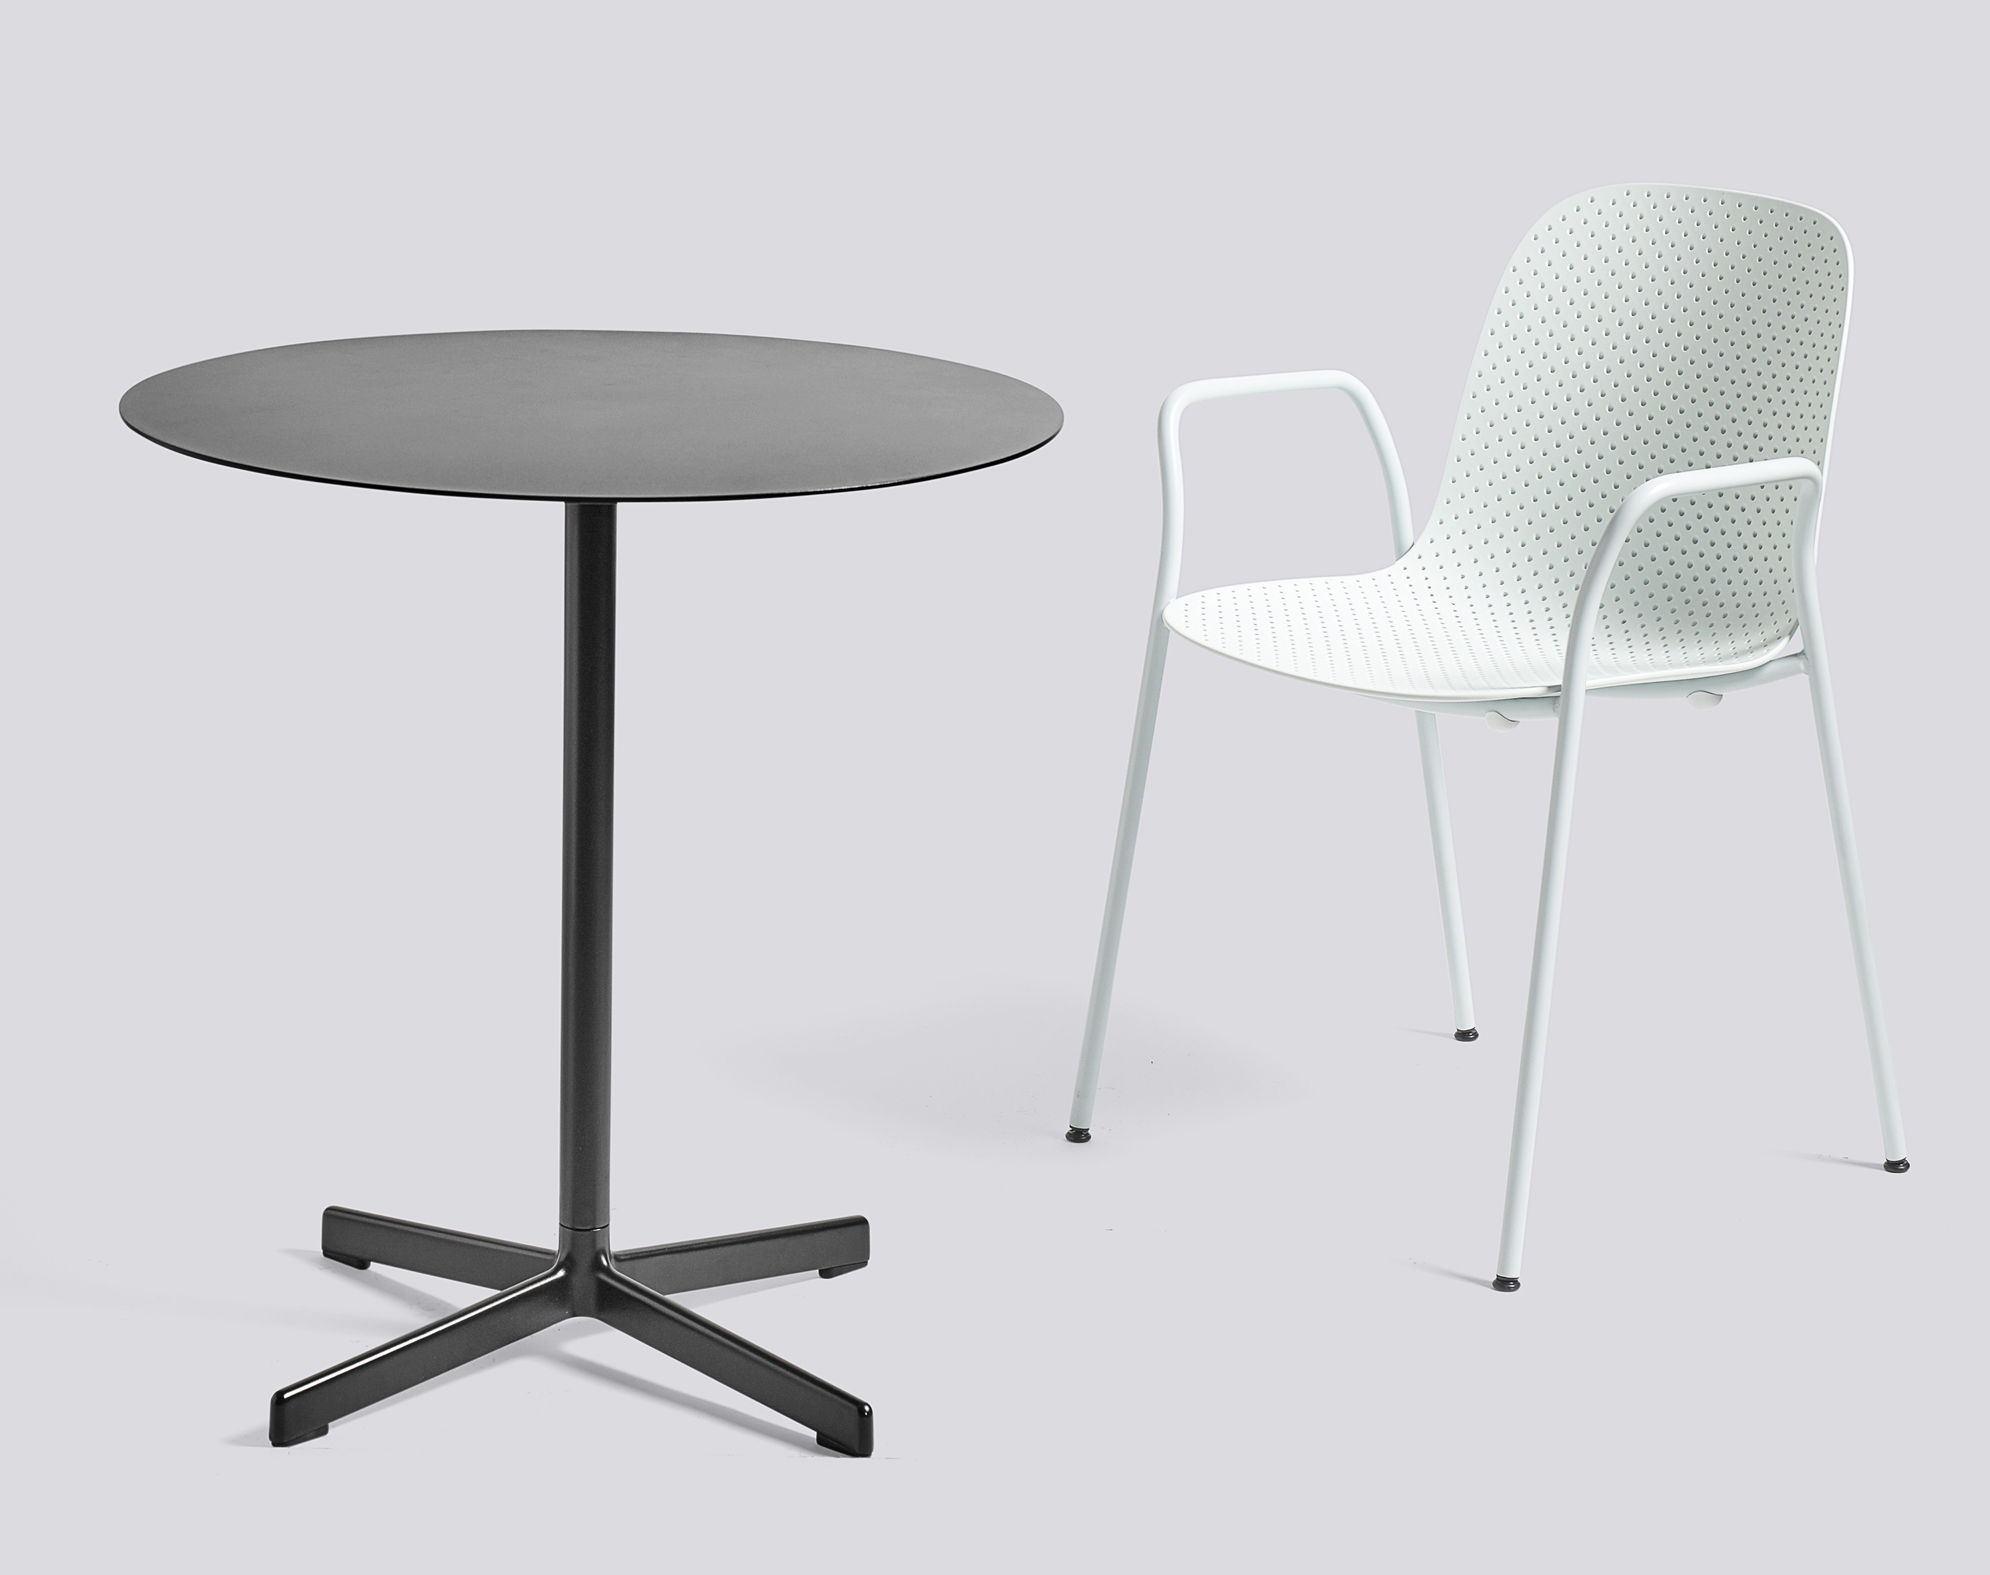 neu table 70 cm charcoal by hay made in design uk. Black Bedroom Furniture Sets. Home Design Ideas